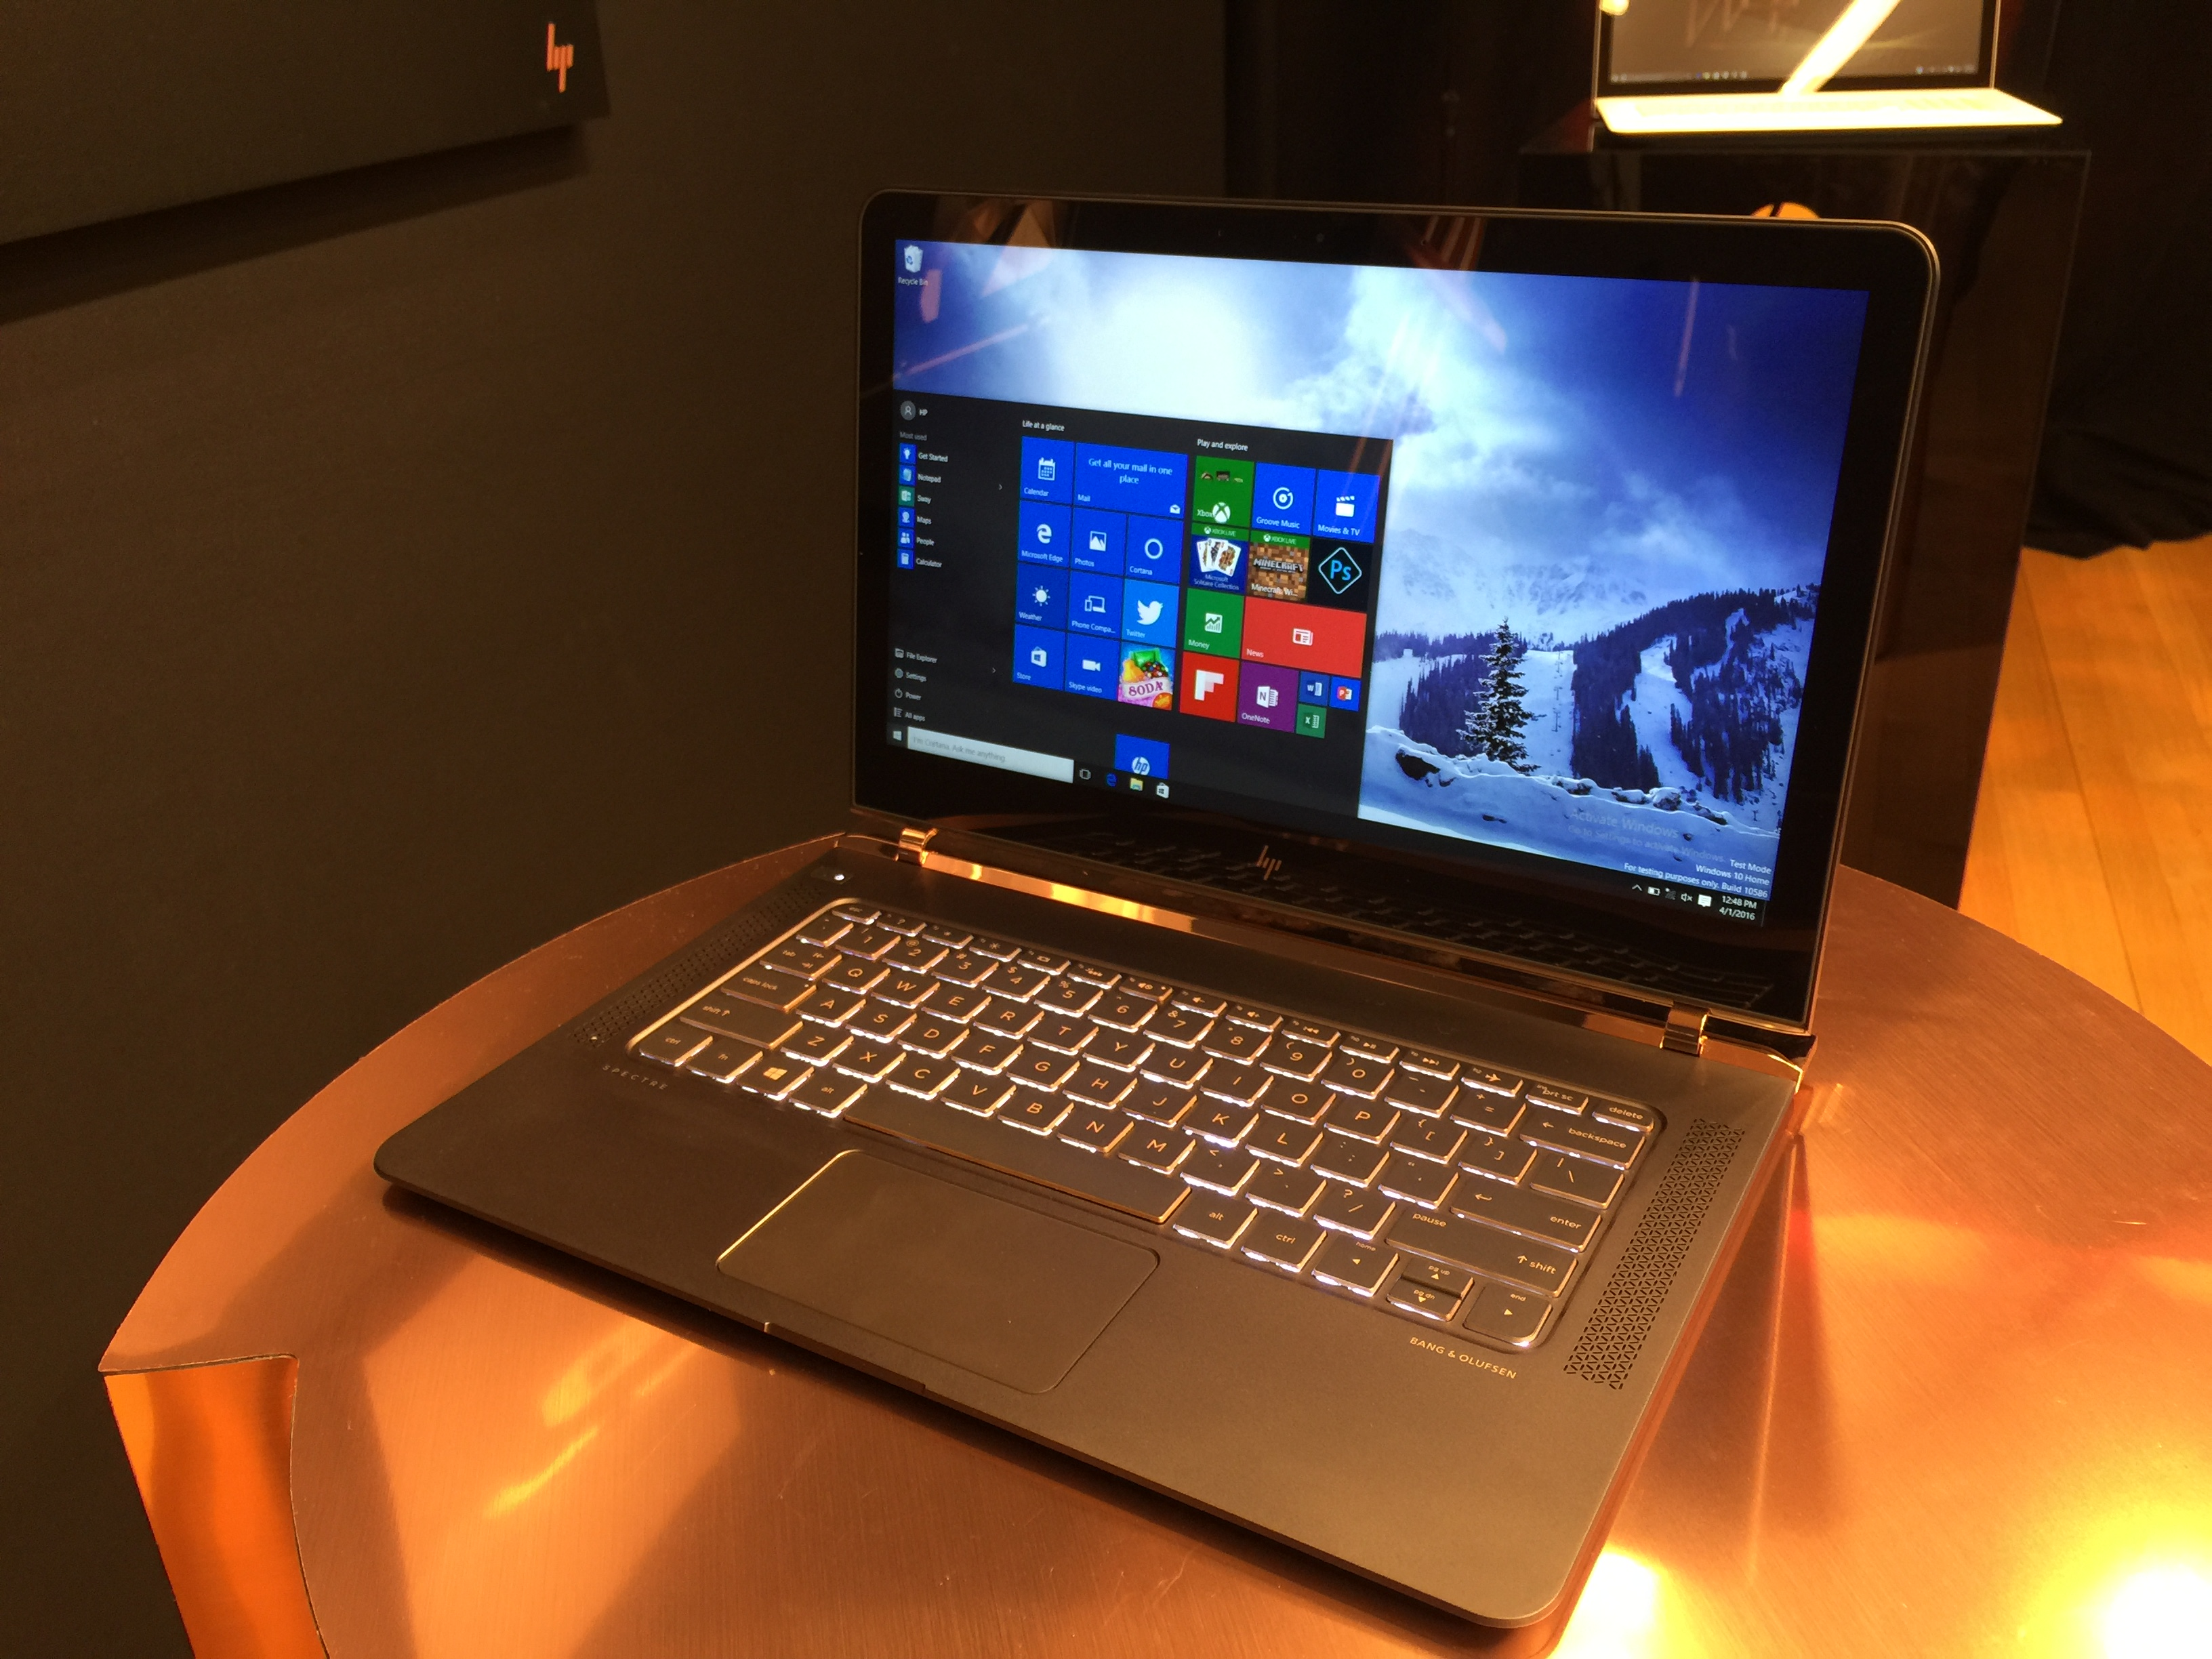 Meet the new HP Spectre: The world's thinnest laptop